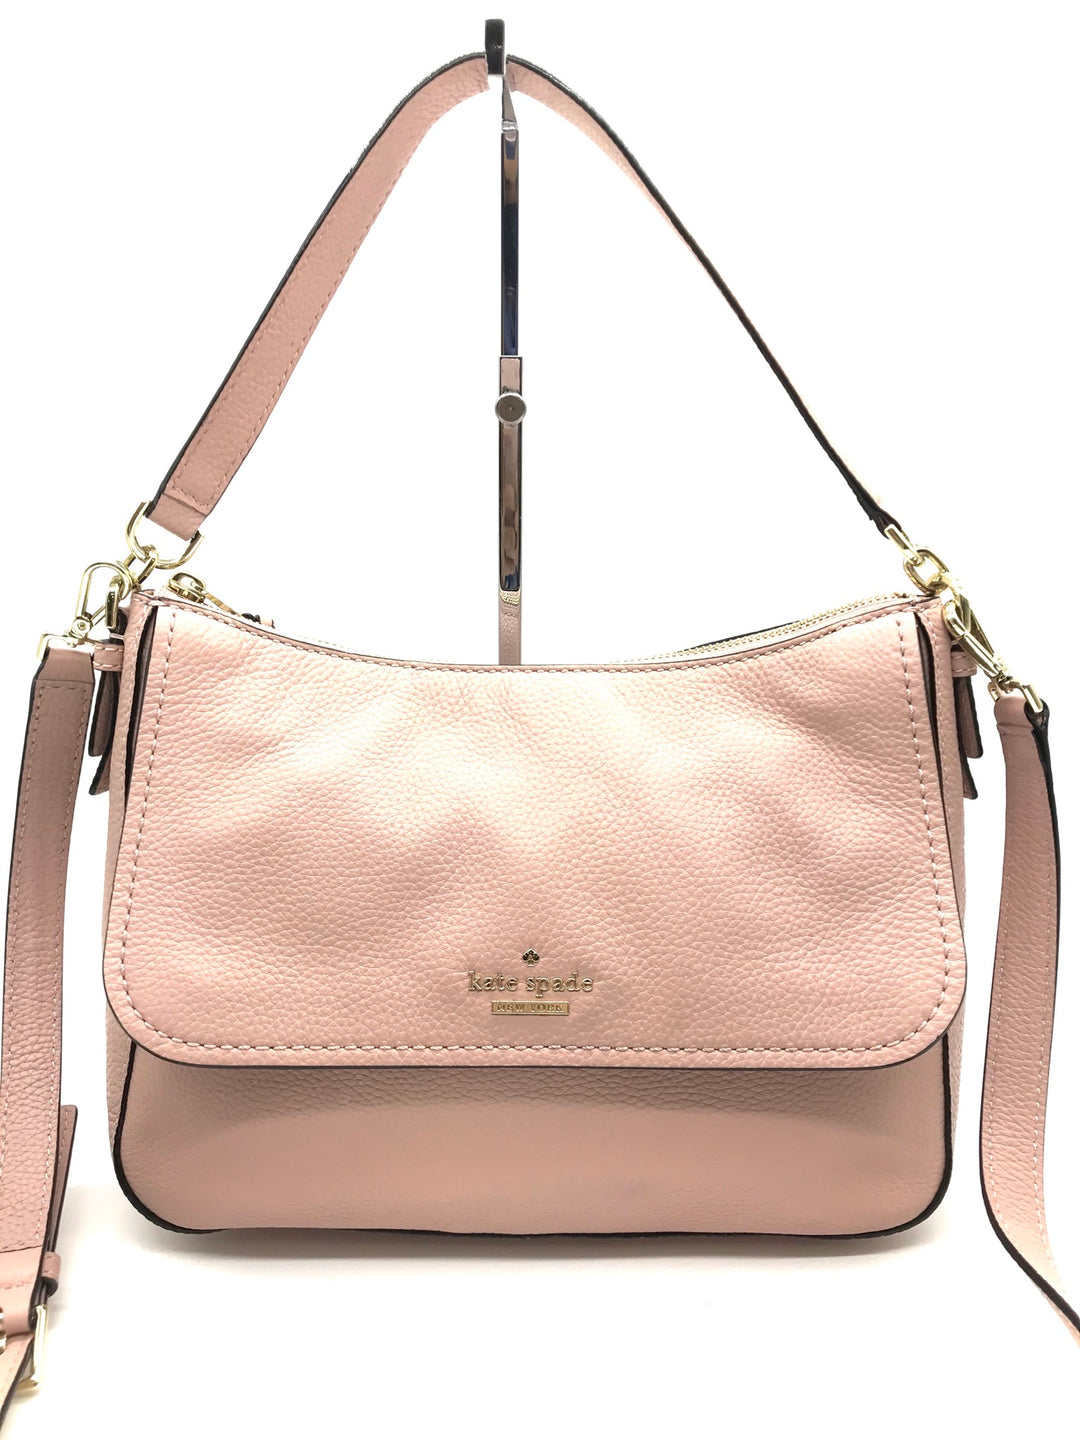 Photo #1 - BRAND: KATE SPADE <BR>STYLE: HANDBAG DESIGNER <BR>COLOR: LIGHT PINK <BR>SIZE: MEDIUM <BR>SKU: 262-26275-66916<BR>IN EXCELLENT SHAPE AND CONDITION